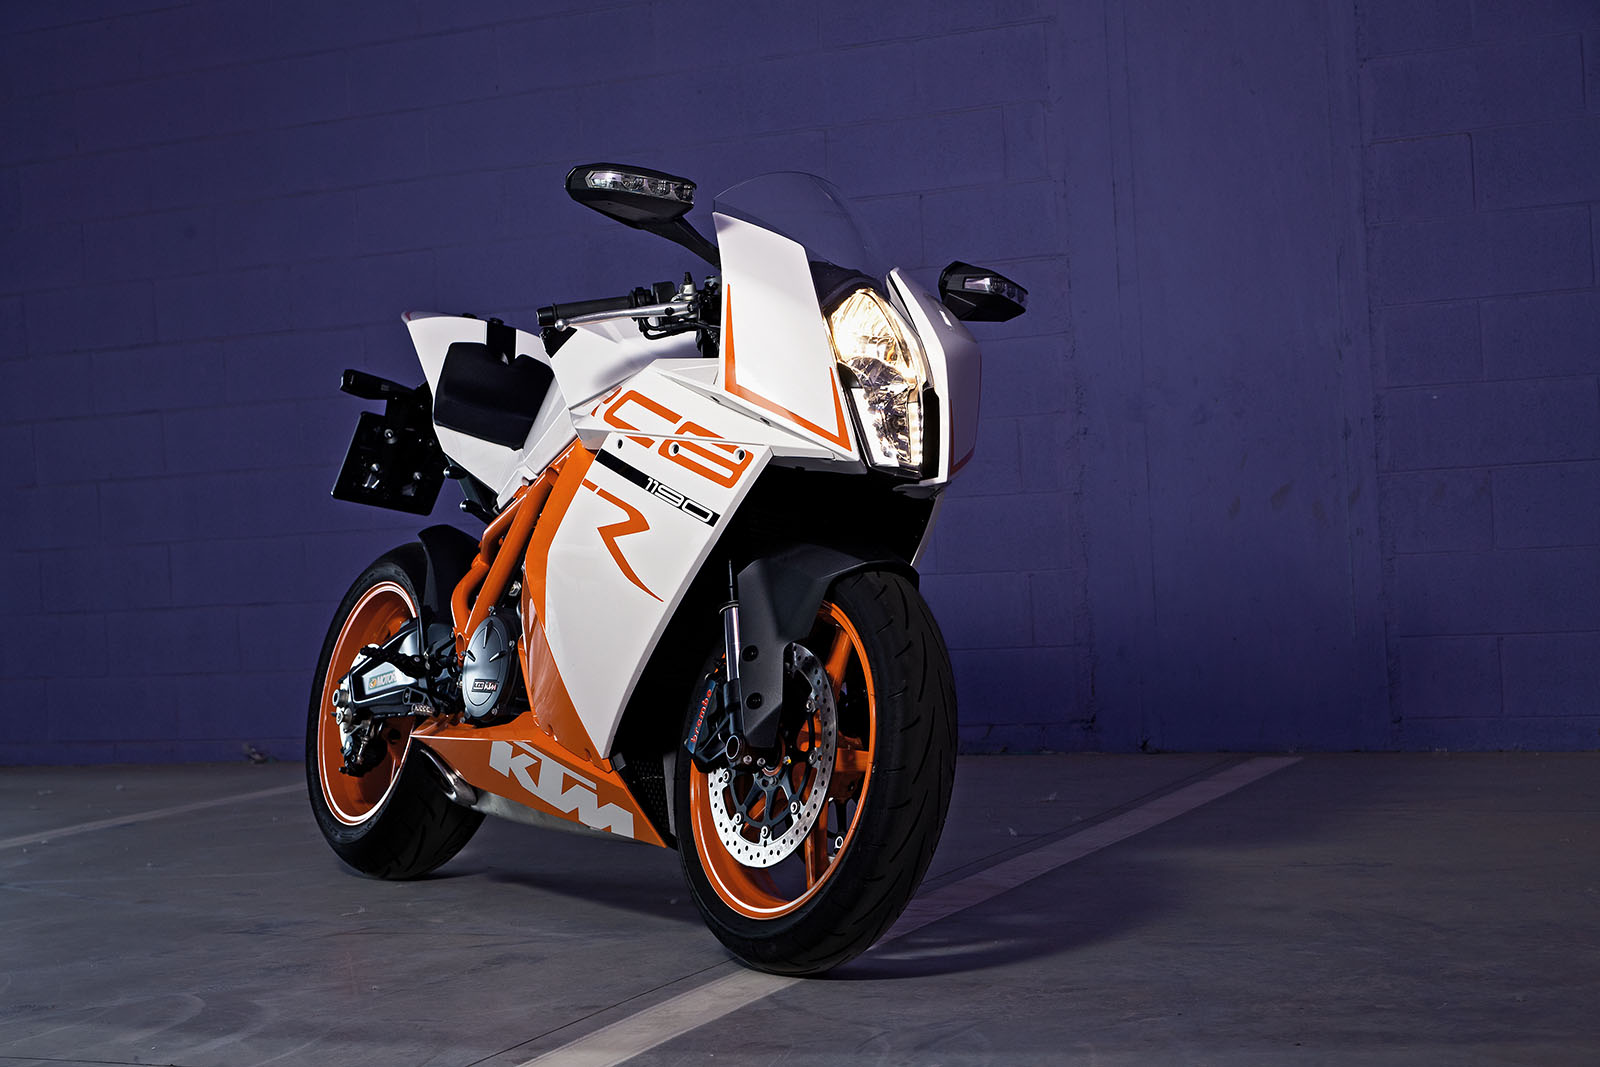 KTM_rc8r_2011_1190_static_front_parking